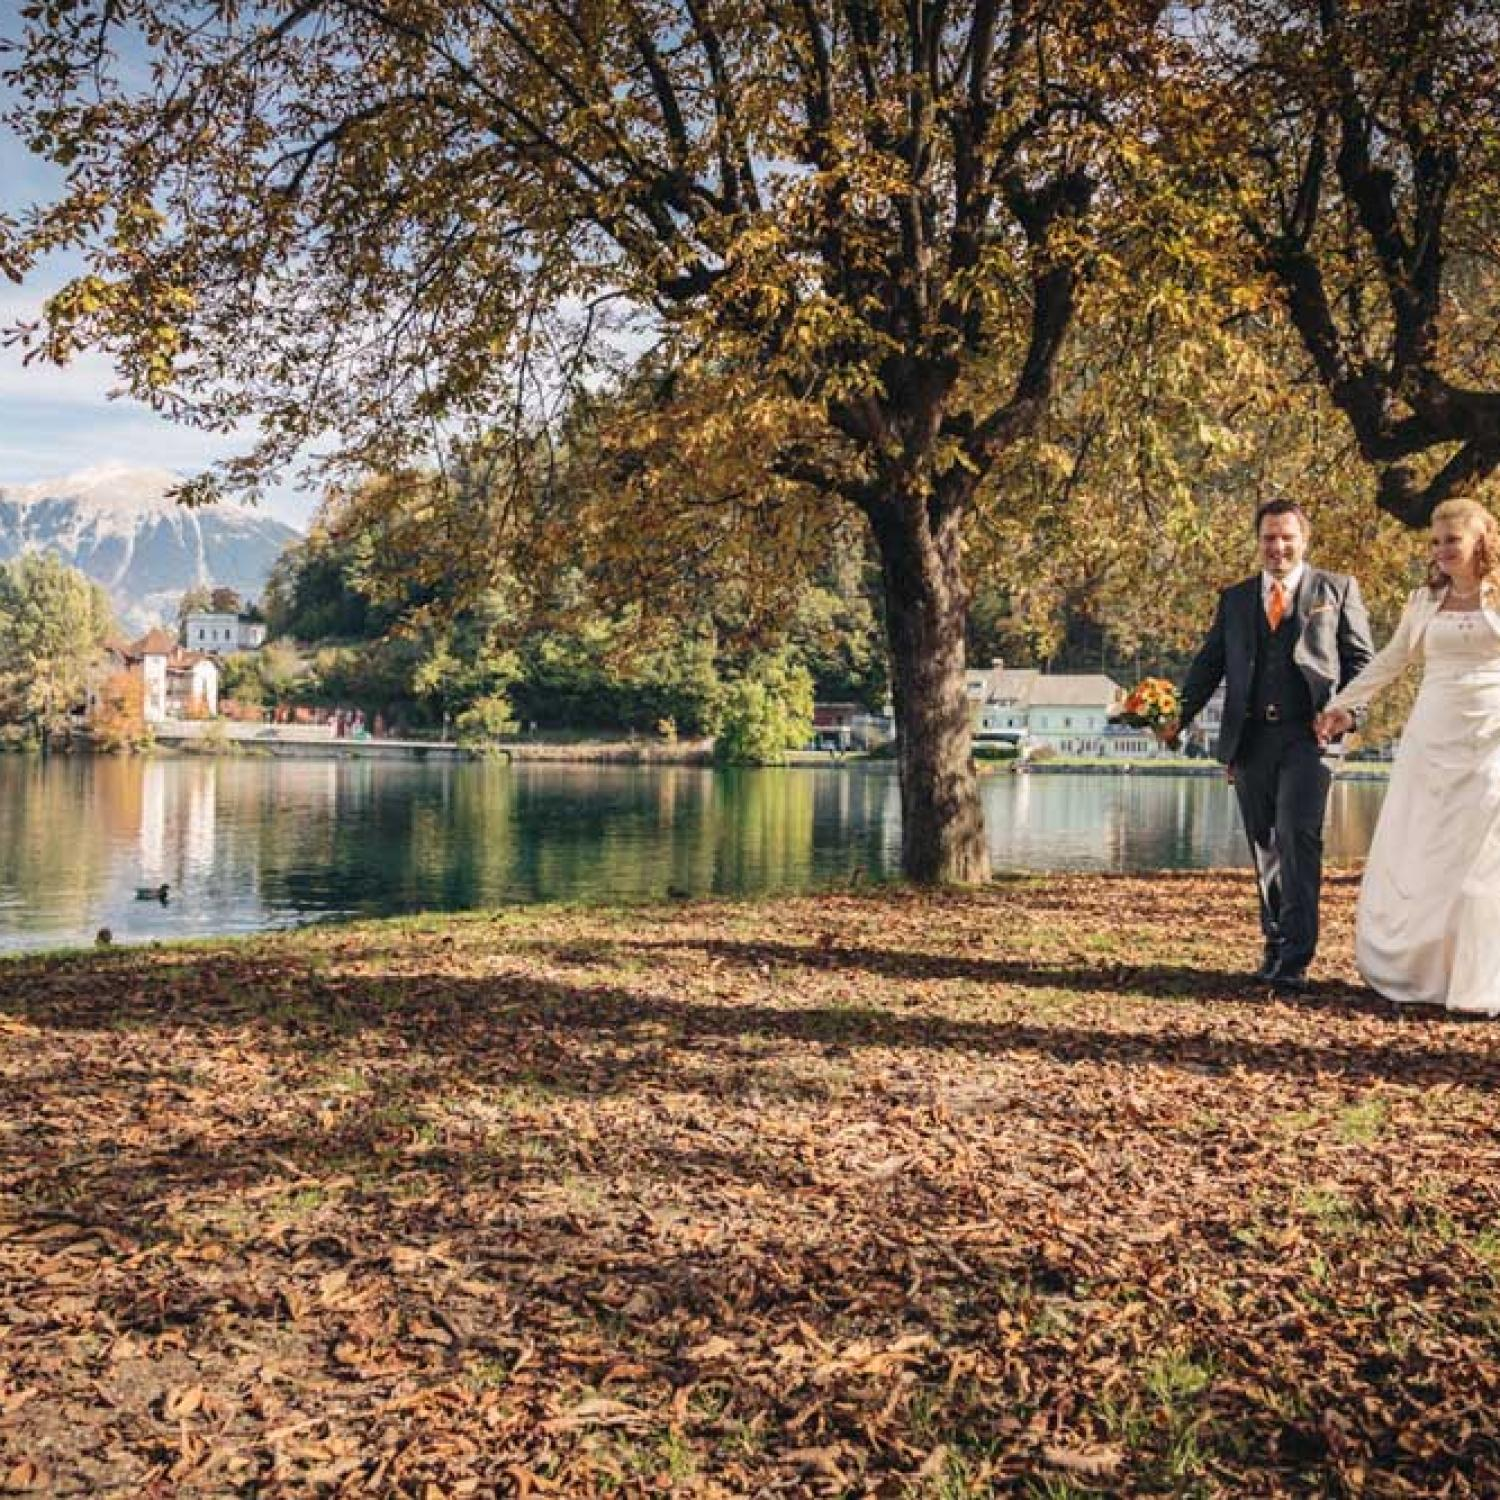 Couple next to Bled Lake in autumn